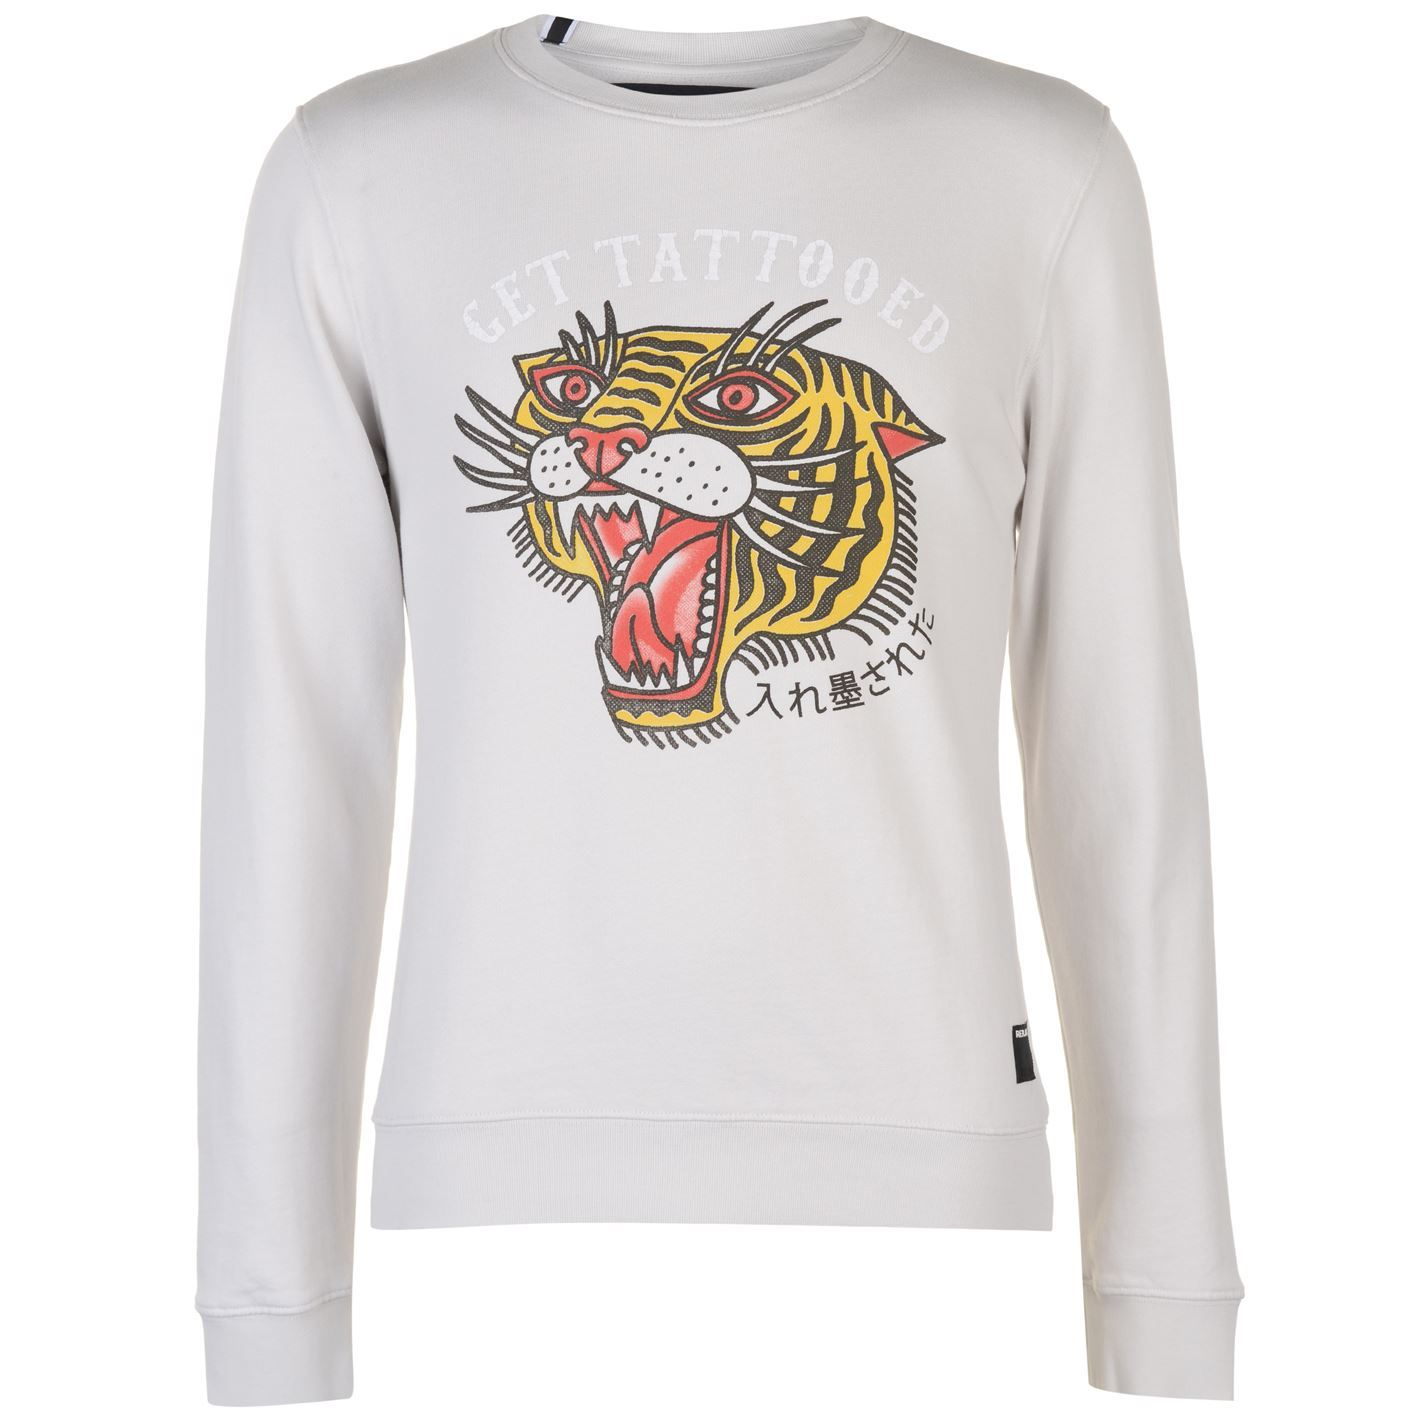 Mens-Replay-Tiger-Print-Sweater-Crew-Long-Sleeve-New